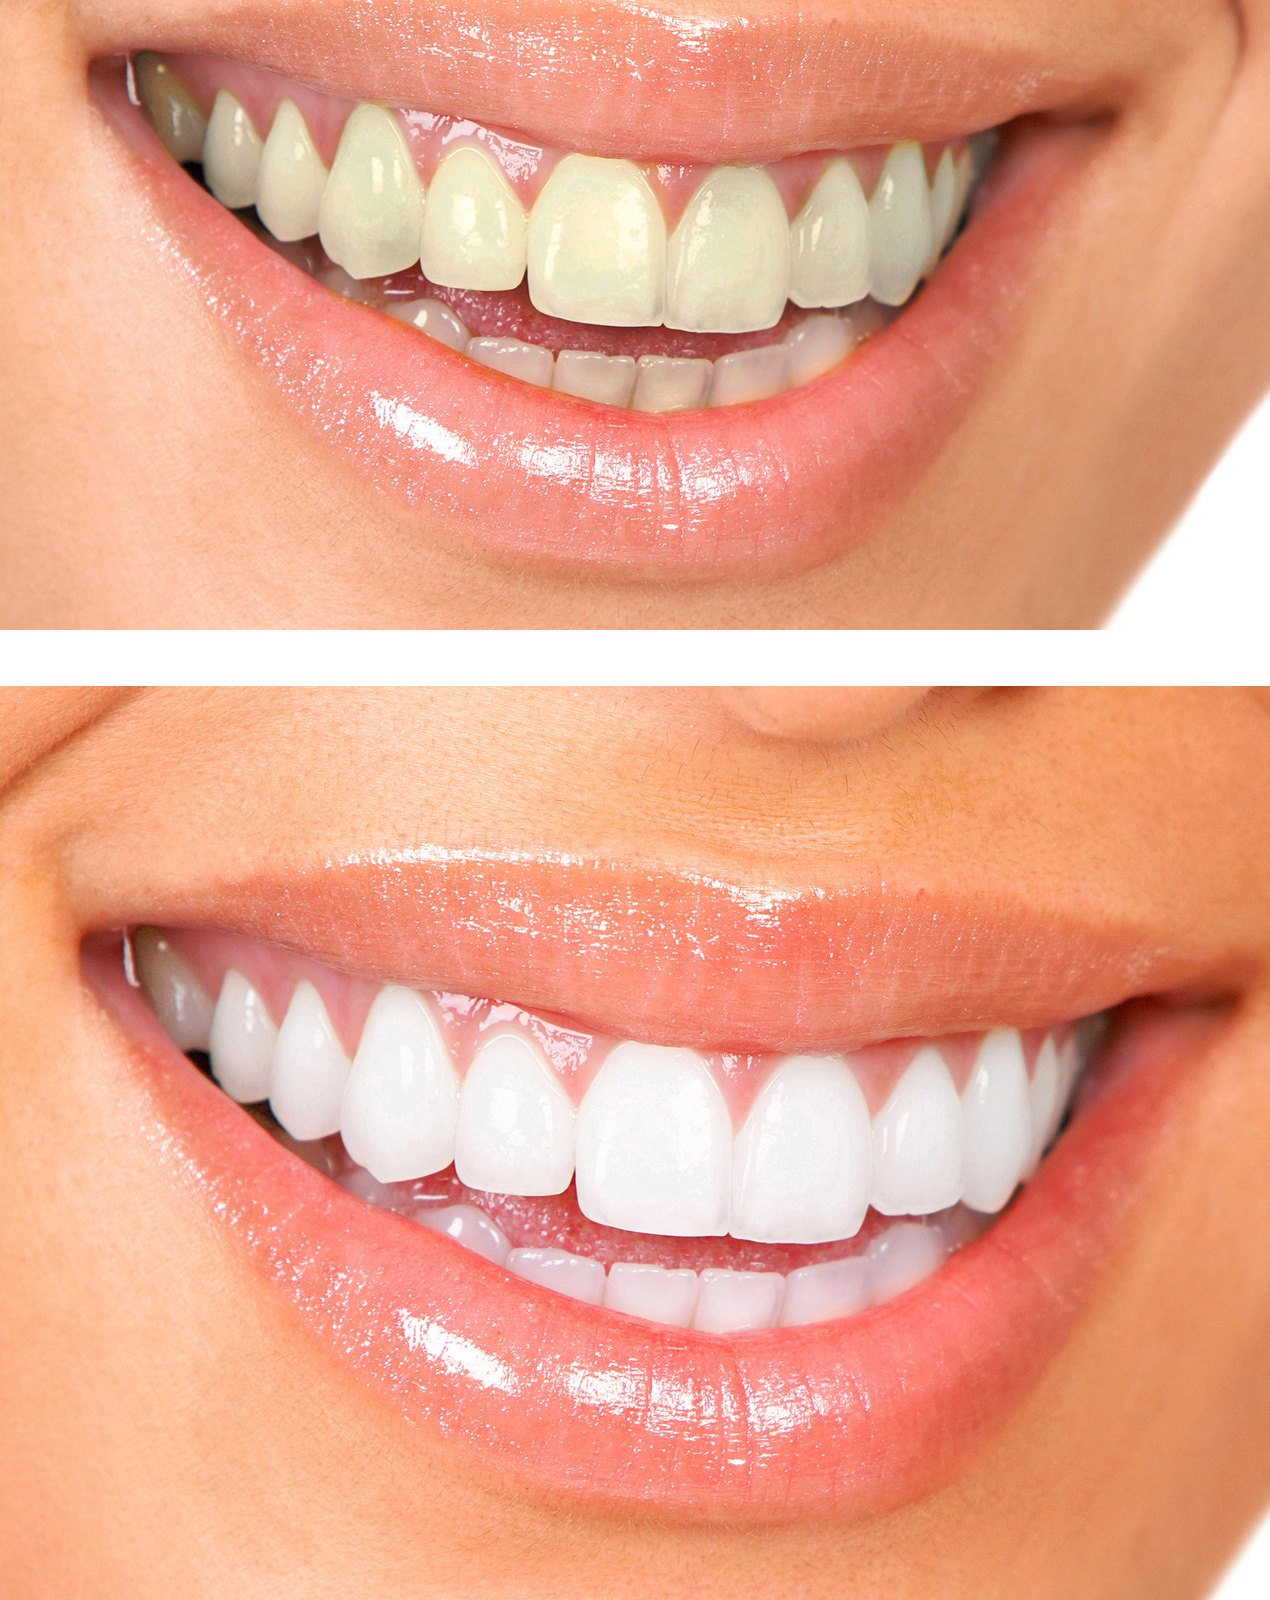 Teeth Whitening in Mississauga, ON